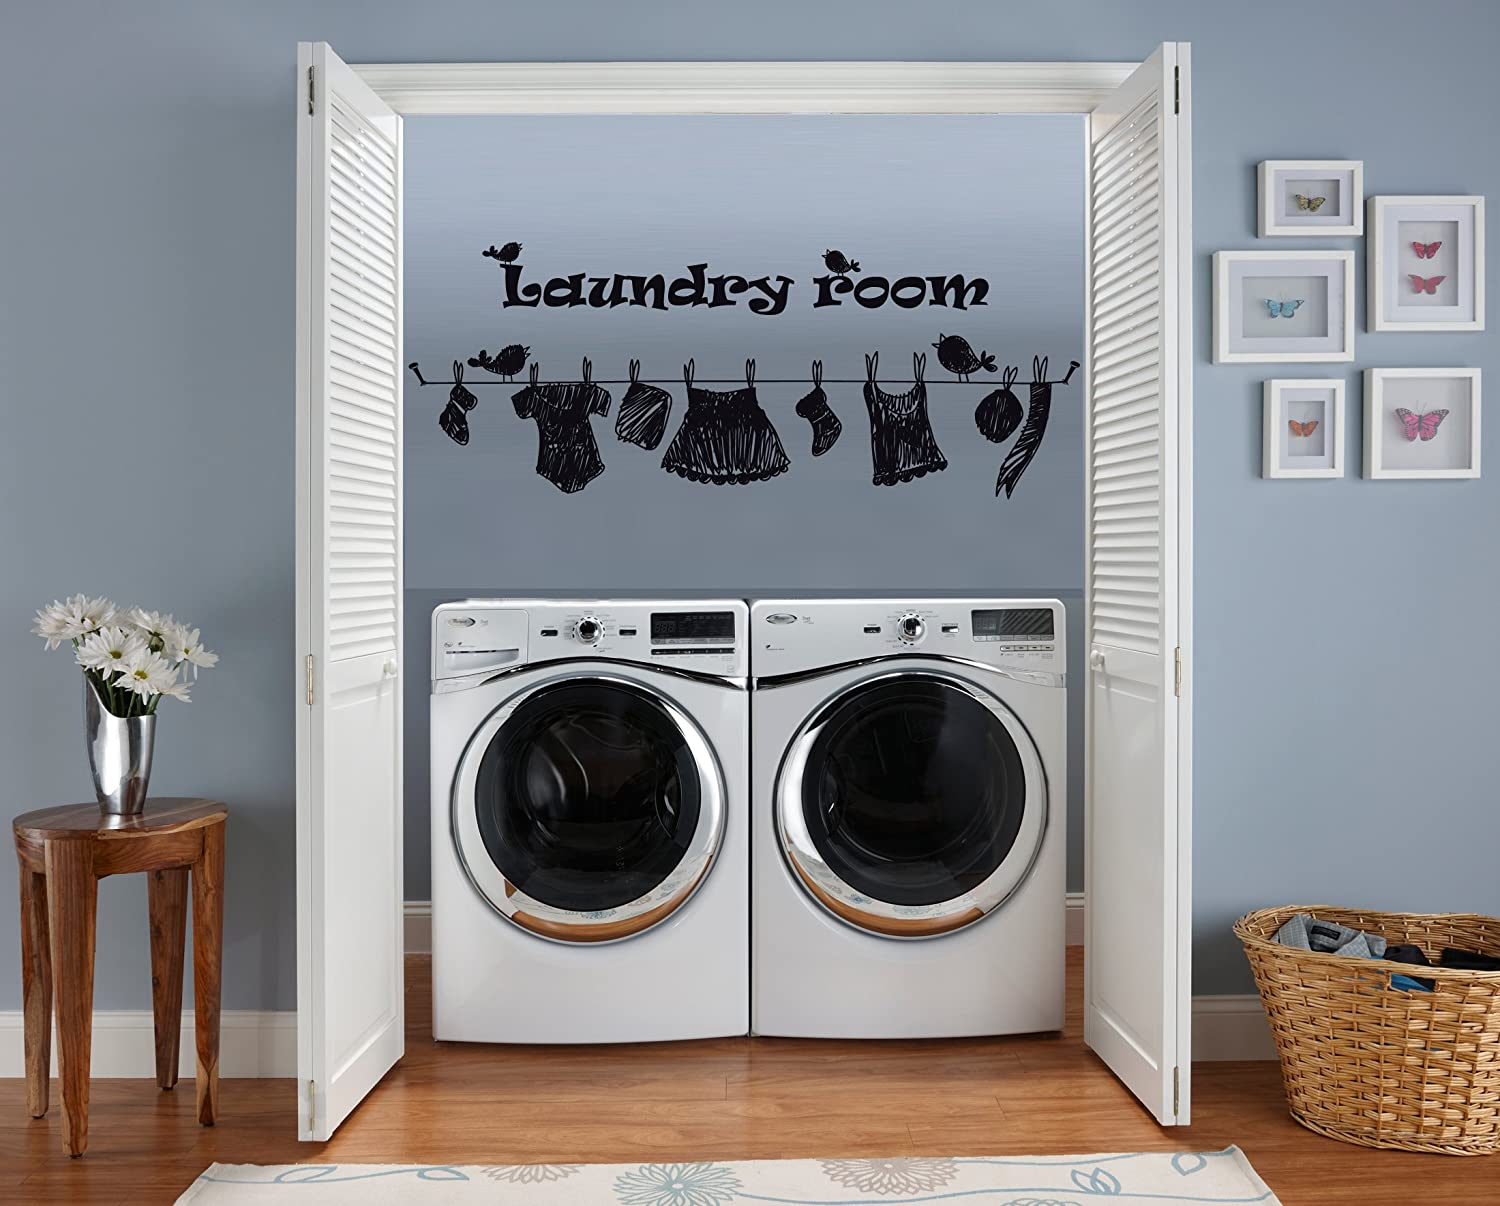 The Laundry room drop your pants  vinyl wall decal